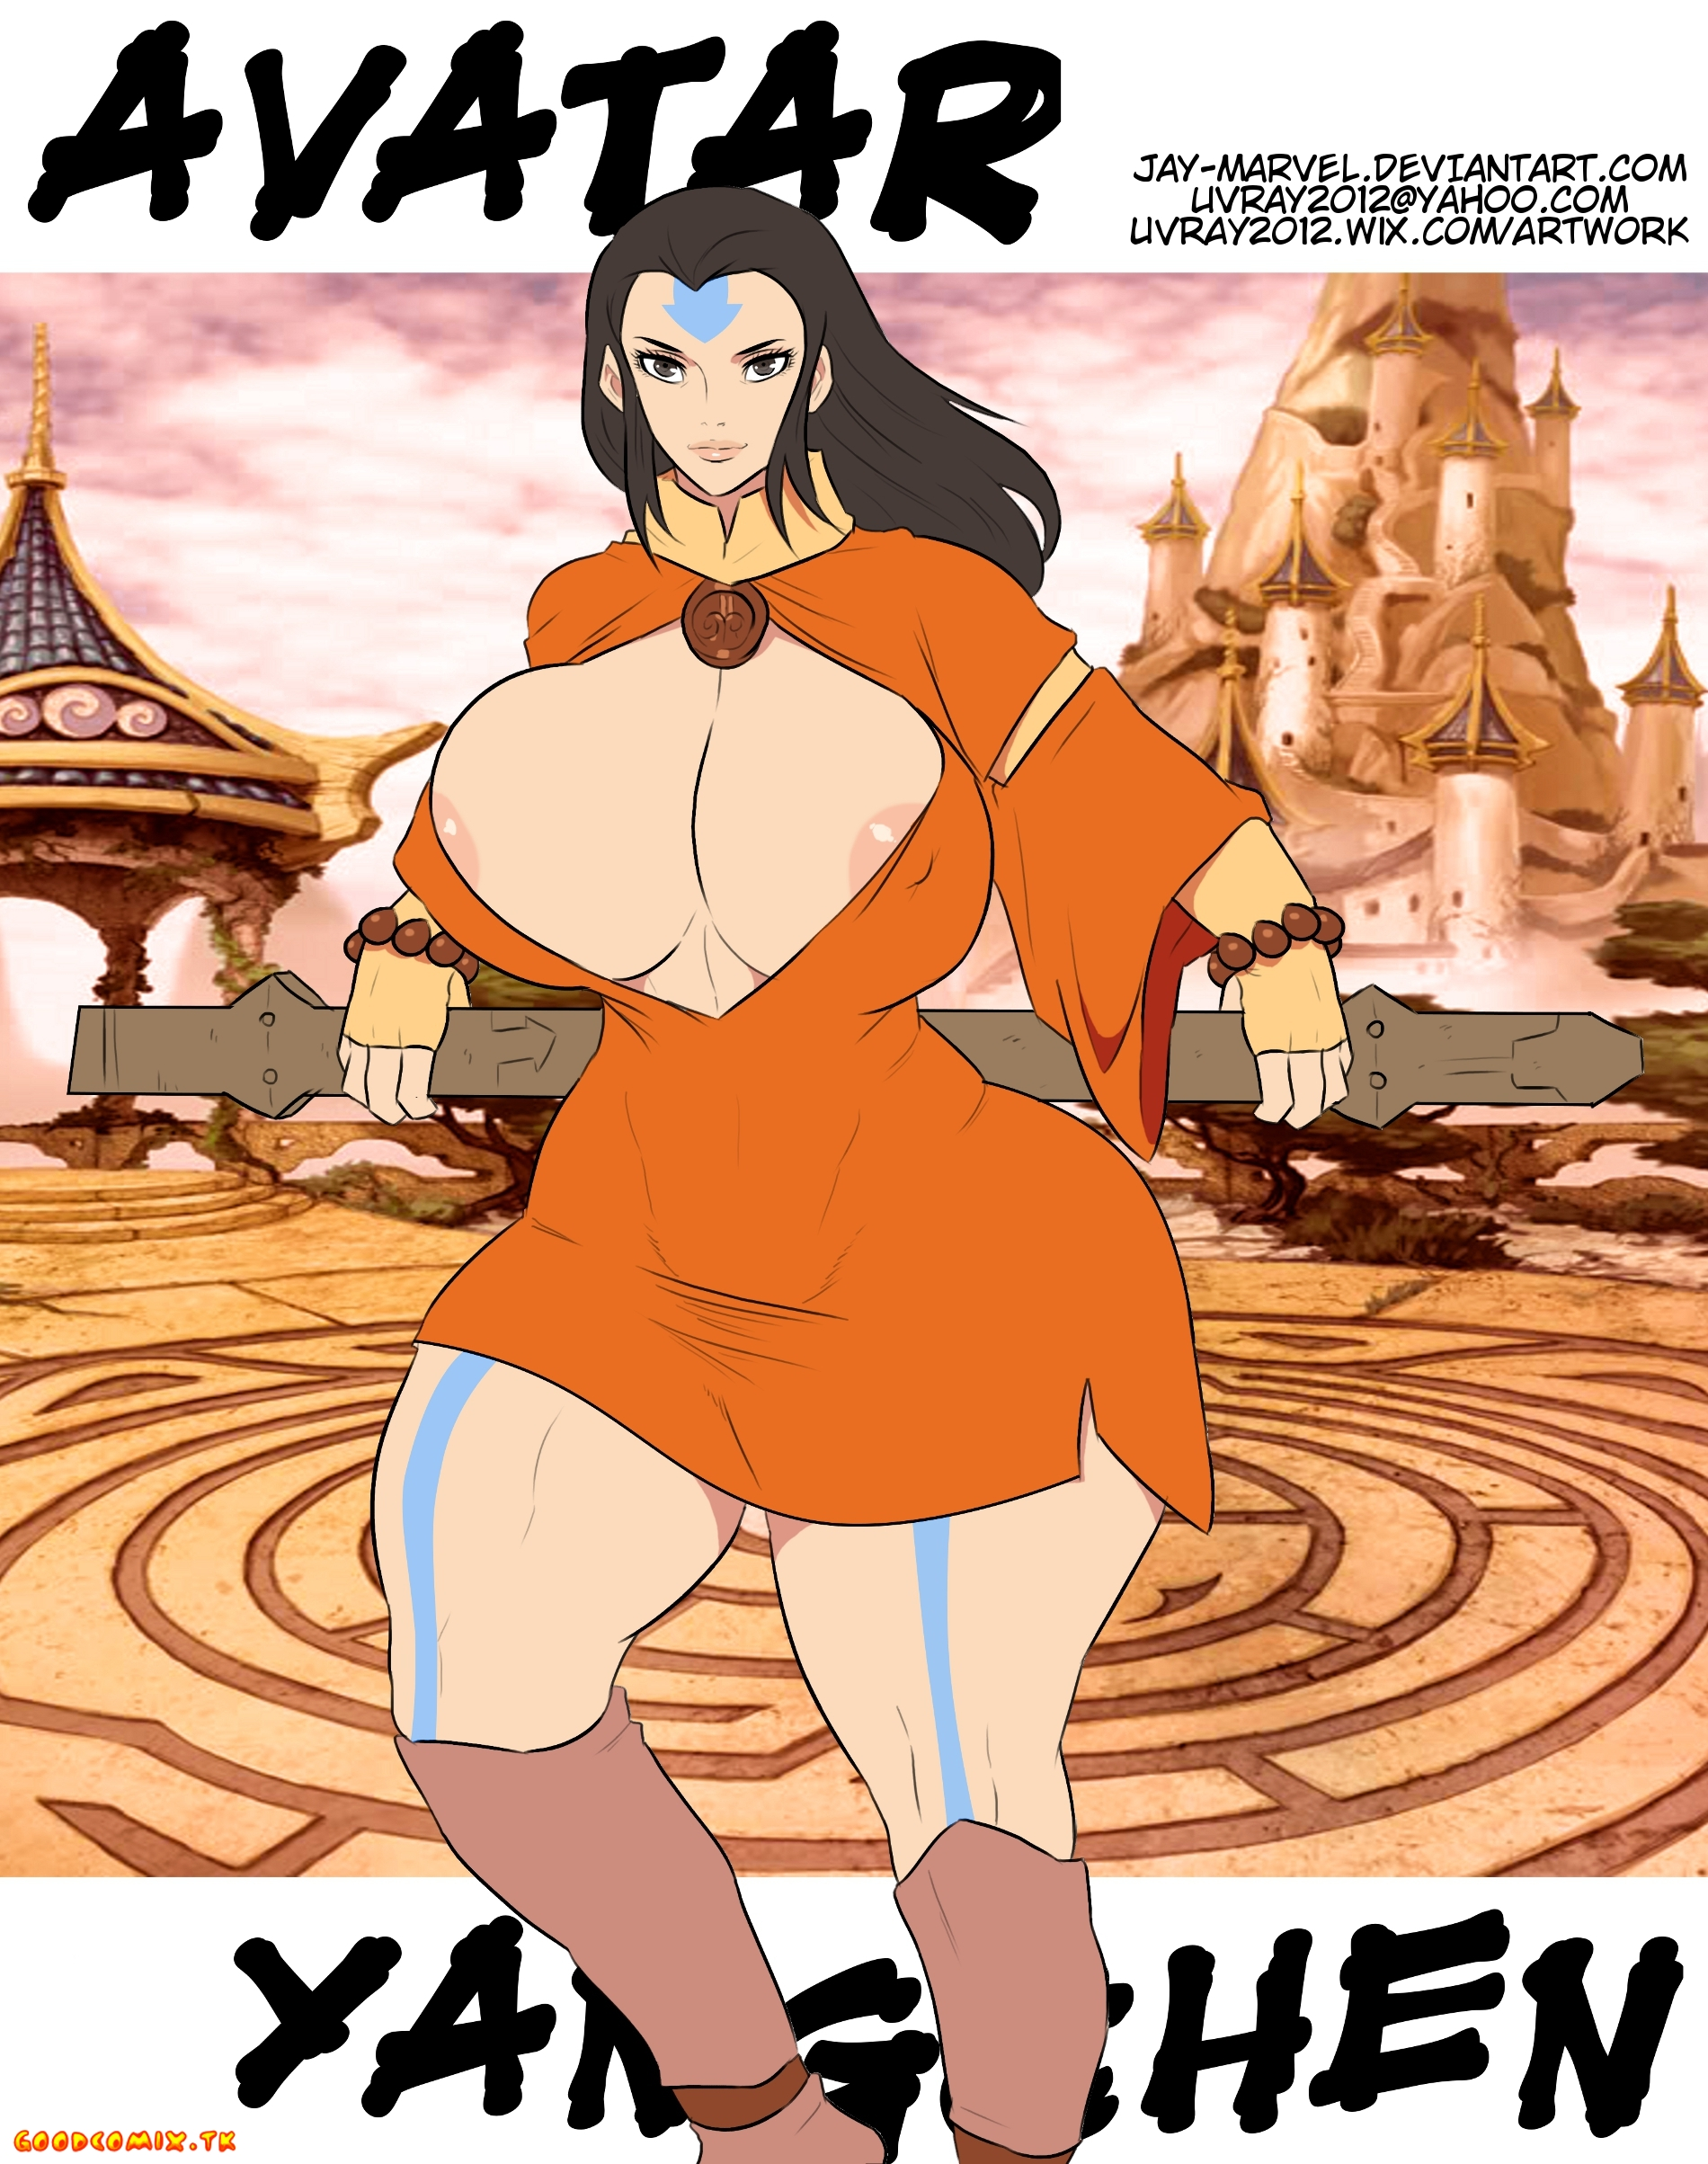 Goodcomix.tk Avatar the Last Airbender - [Jay Marvel] - Avatar Yangchen